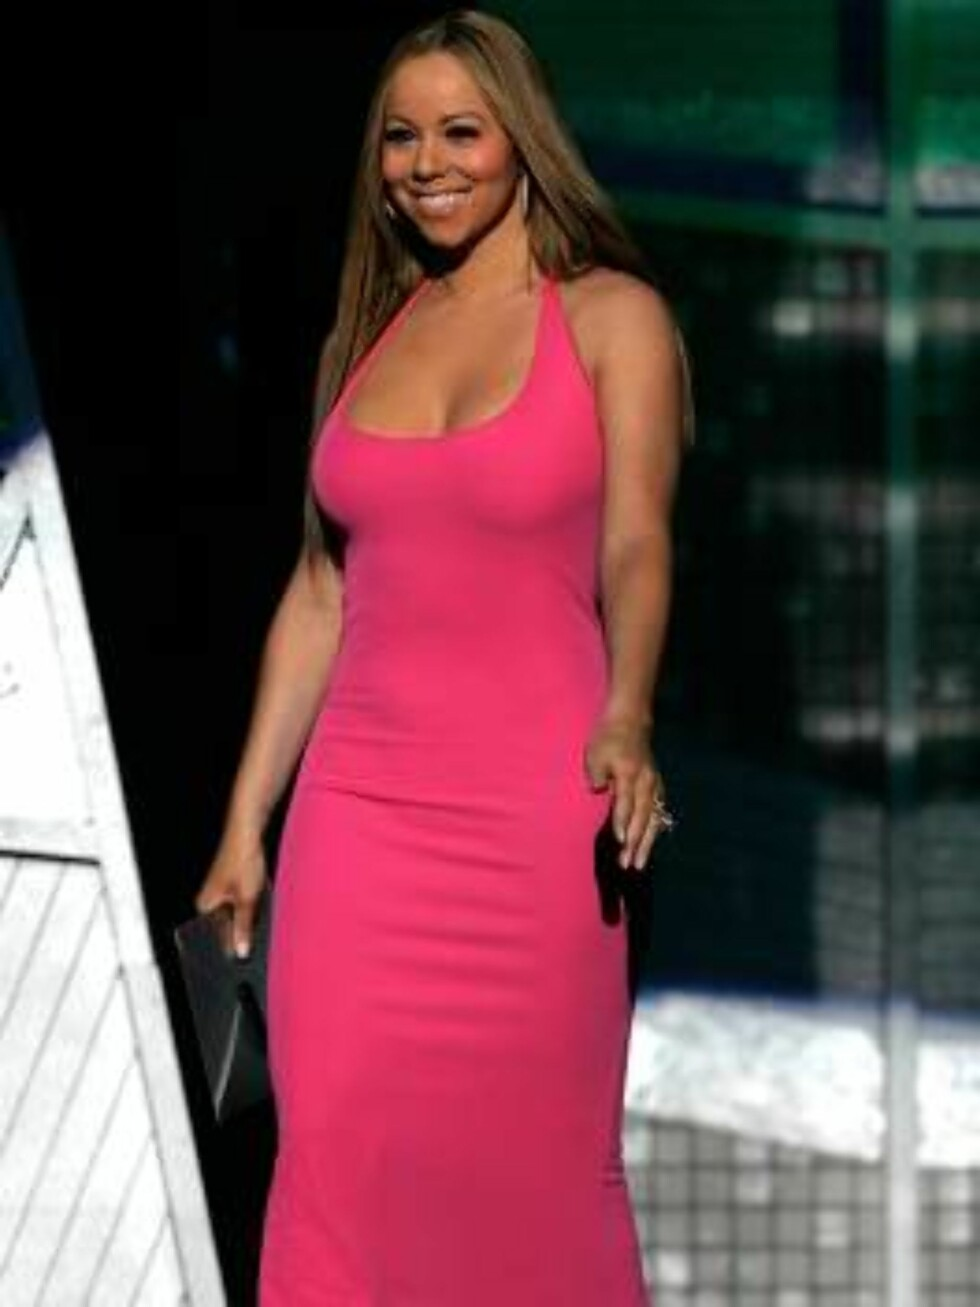 """HOLLYWOOD - JULY 12:  Singer Mariah Carey presents the award for """"Best Male Athlete"""" at the 2006 ESPY Awards at the Kodak Theatre on July 12, 2006 in Hollywood, California.  (Photo by Kevin Winter/Getty Images)71415534CA108_2006_ESPY_Awa / ALL OVER PRESS7 Foto: All Over Press"""